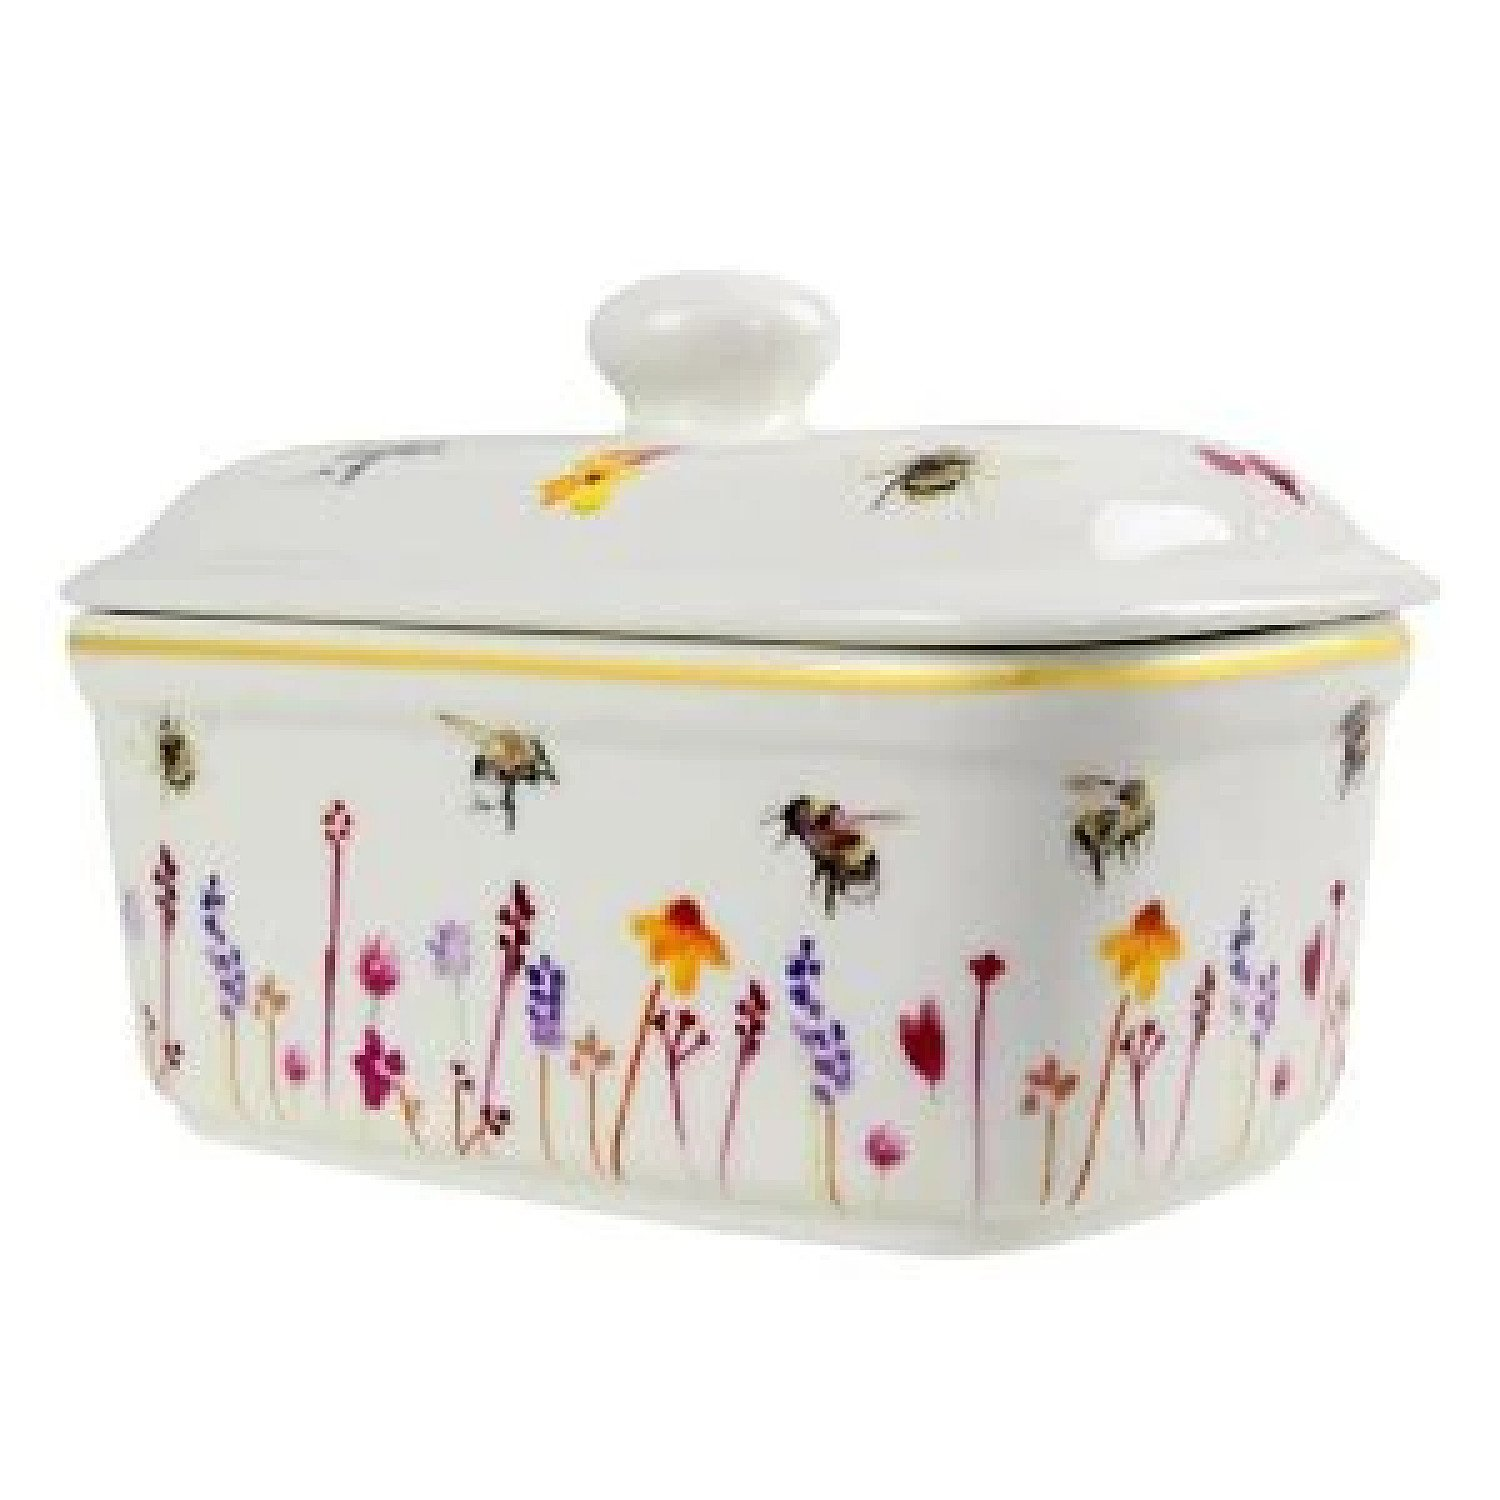 Busy Bees Ceramic Butter Dish with Lid Watercolour Flowers Print Floral Design £21.99 Free Postage